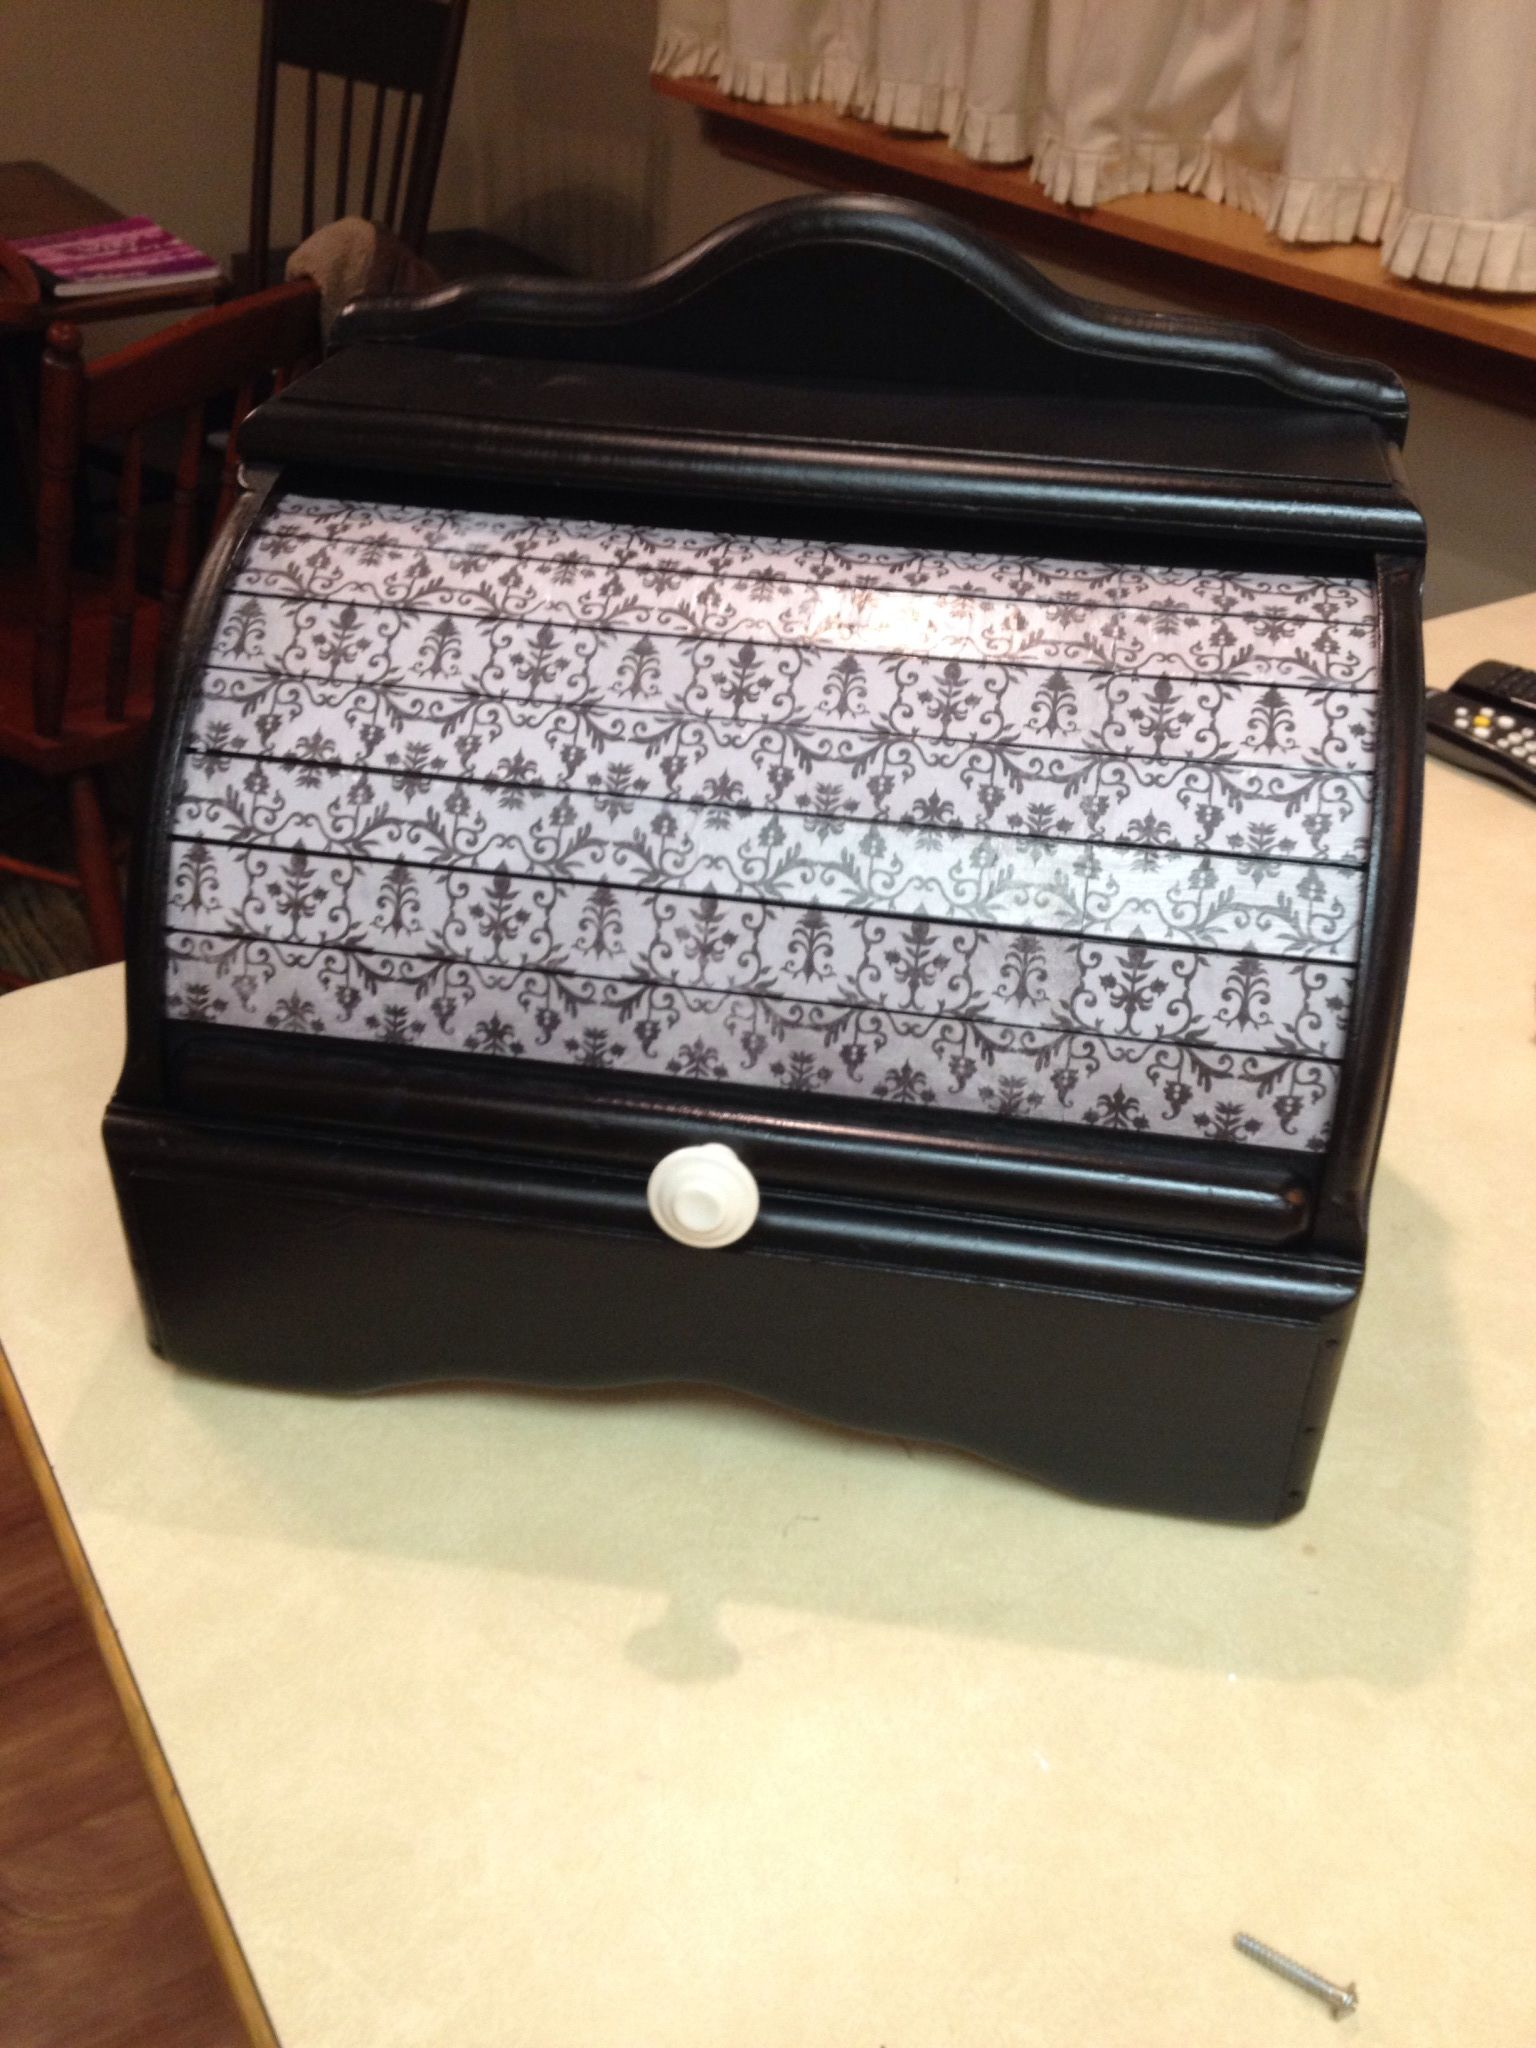 Bread box from Goodwill after